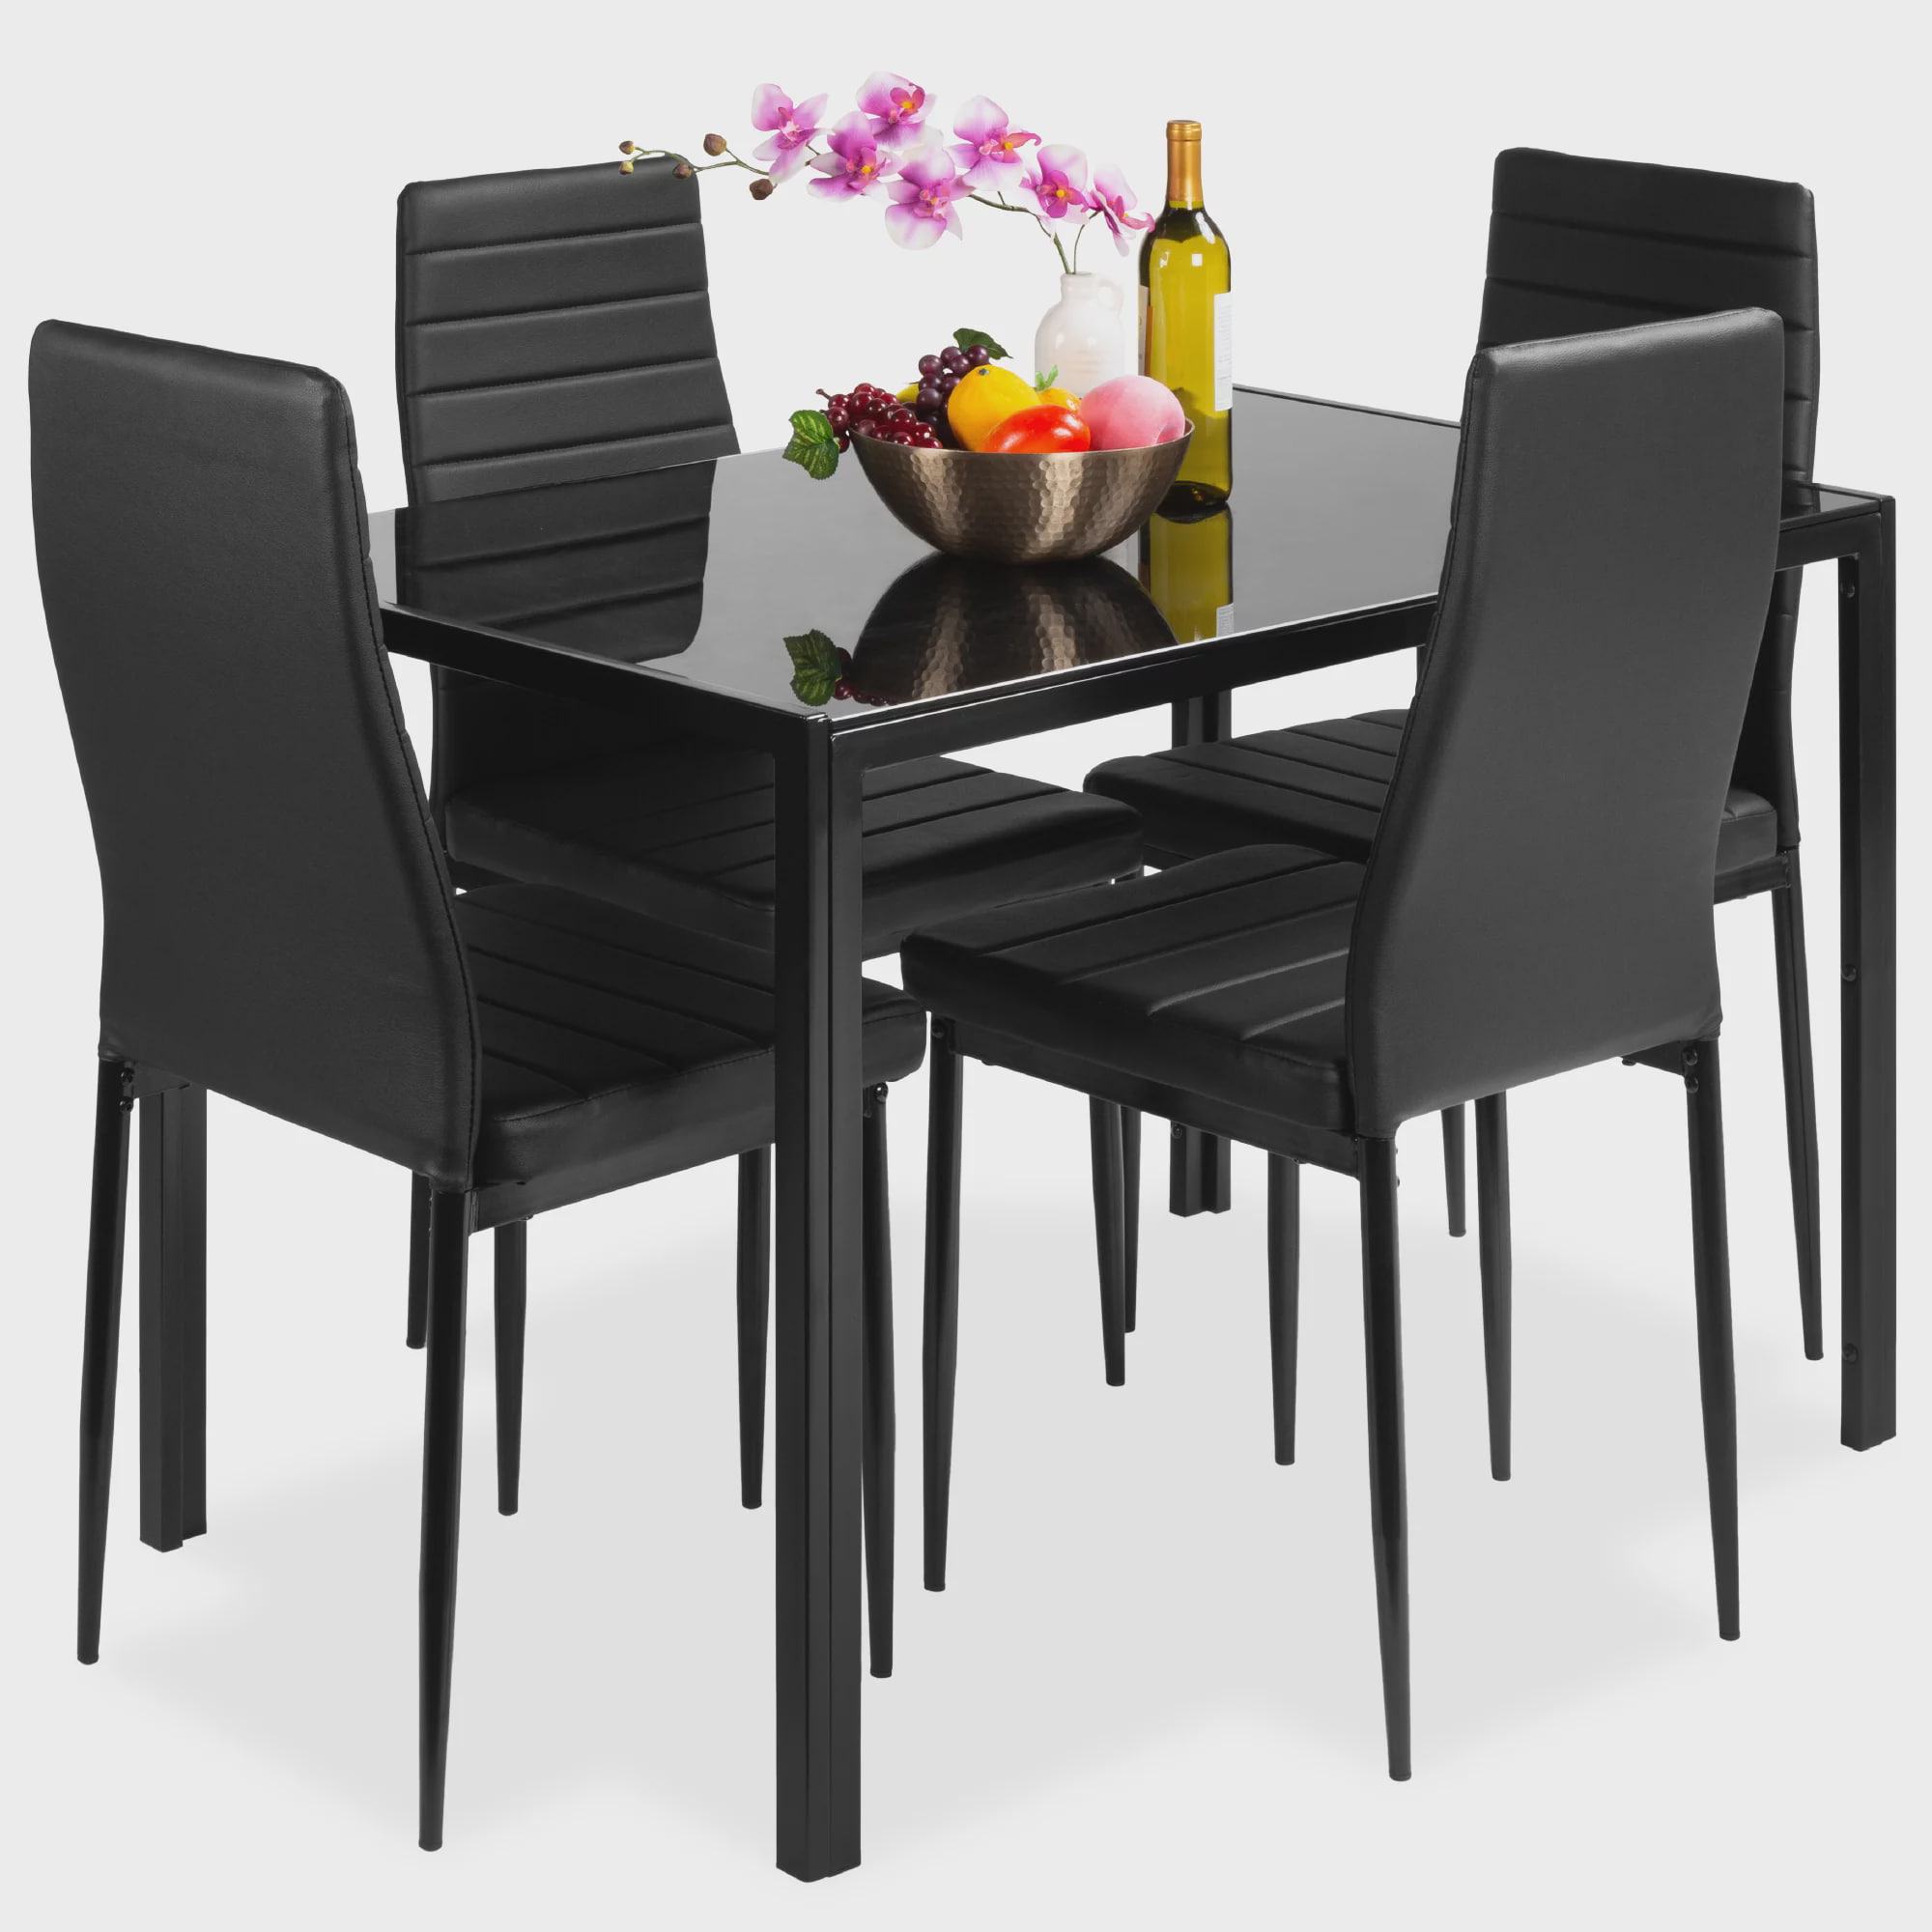 Best Choice Products 5-Piece Kitchen Dining Table Set w/ Glass